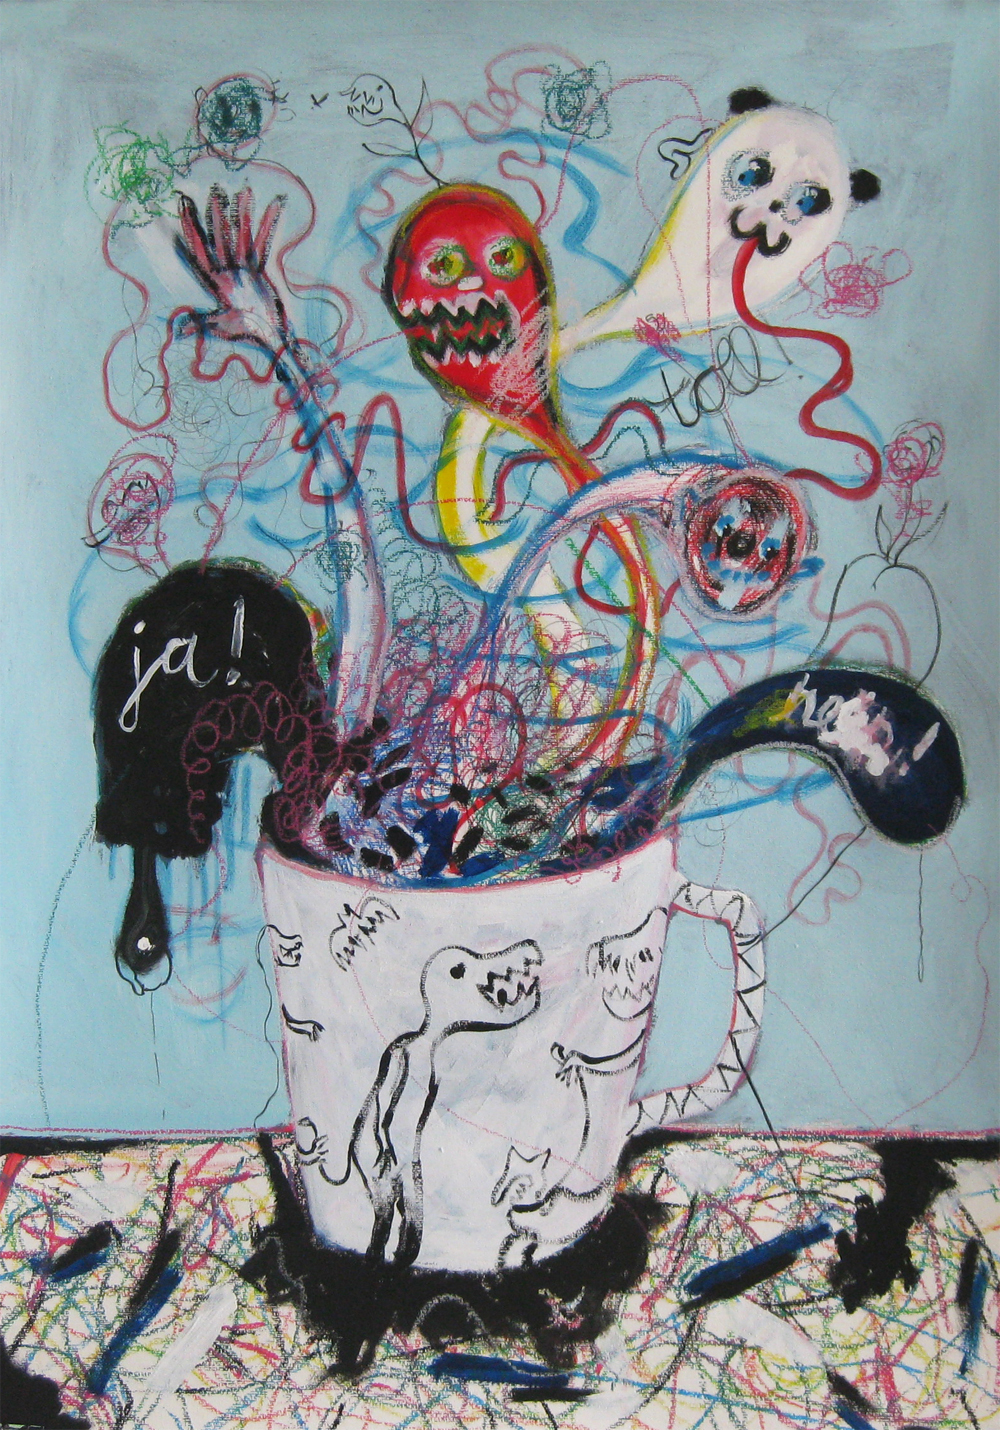 Strange Brew  70 x 100  Mixed media on Paper